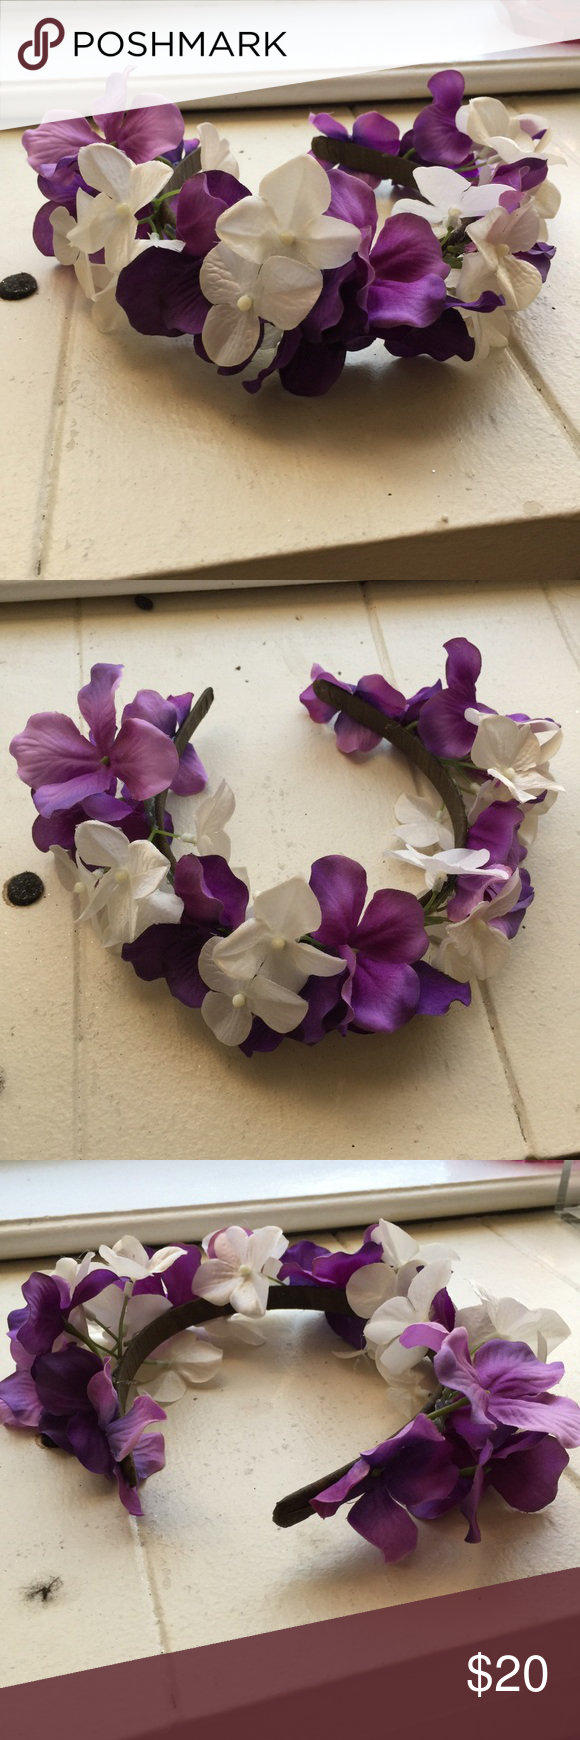 White And Purple Flower Crown Handmade By Me Can Be Worn As A Crown